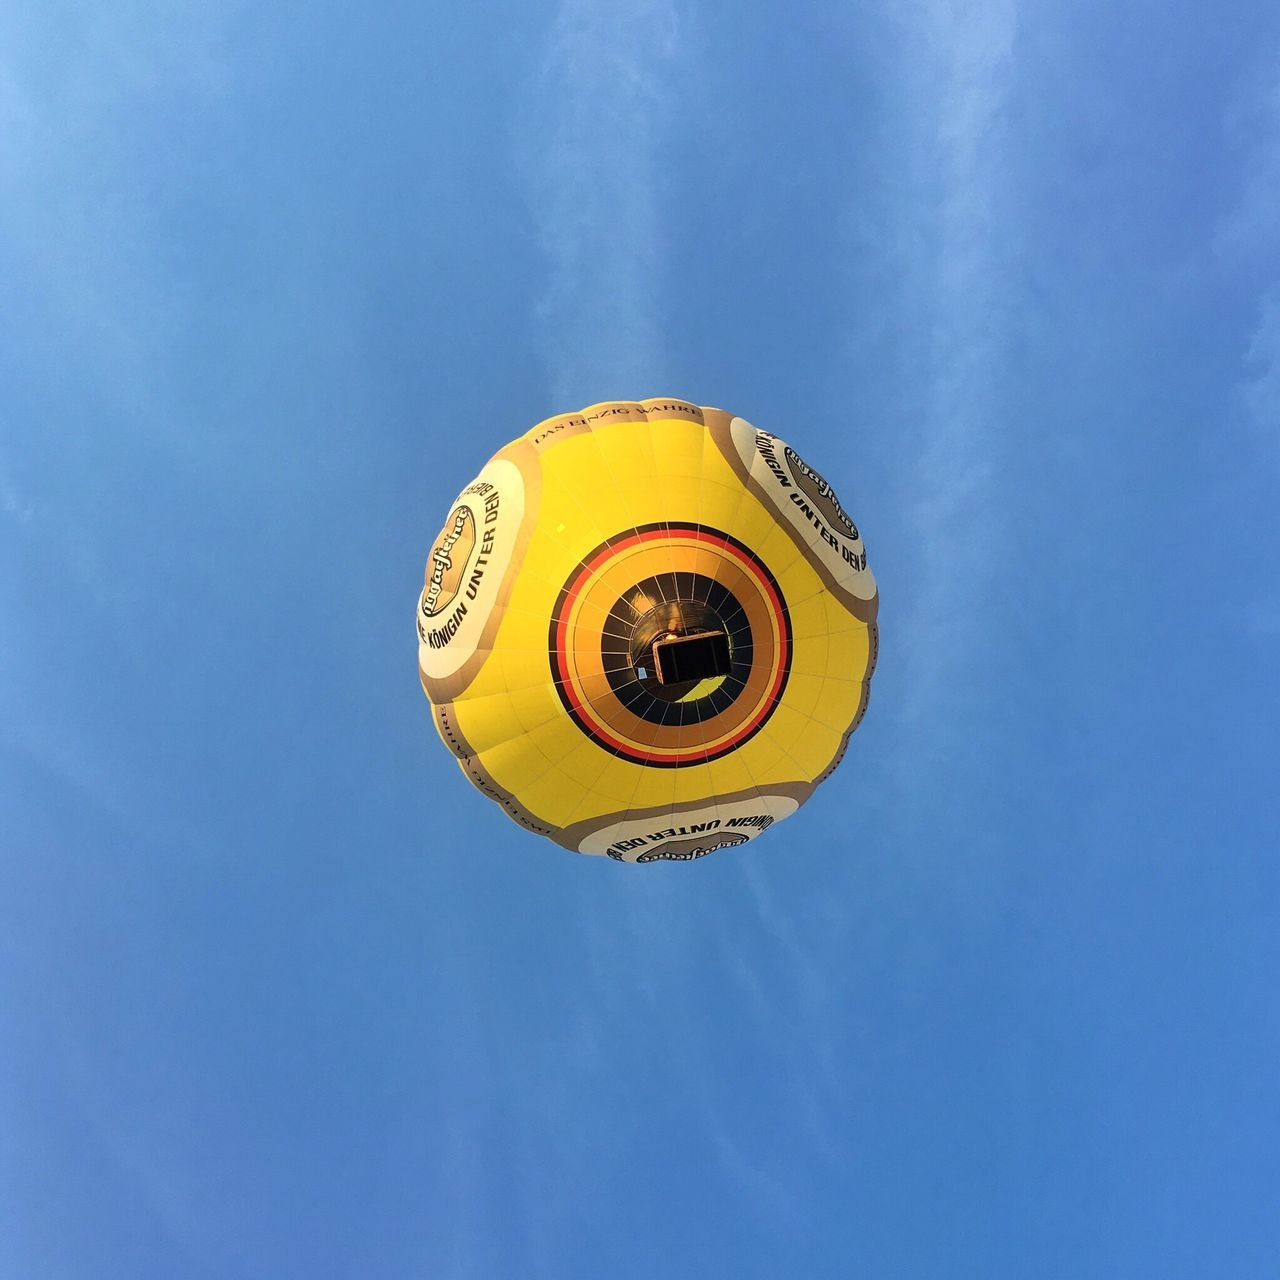 Balloon Balloon Ride Balloon Flight From My Point Of View From Below Up In The Air Low Angle View Sky No People Outdoors AMPt - Still Life (Nature Morte) Capture The Moment Clouds And Sky Yellow Flying Flying High Ballonfahrt Himmel Und Wolken